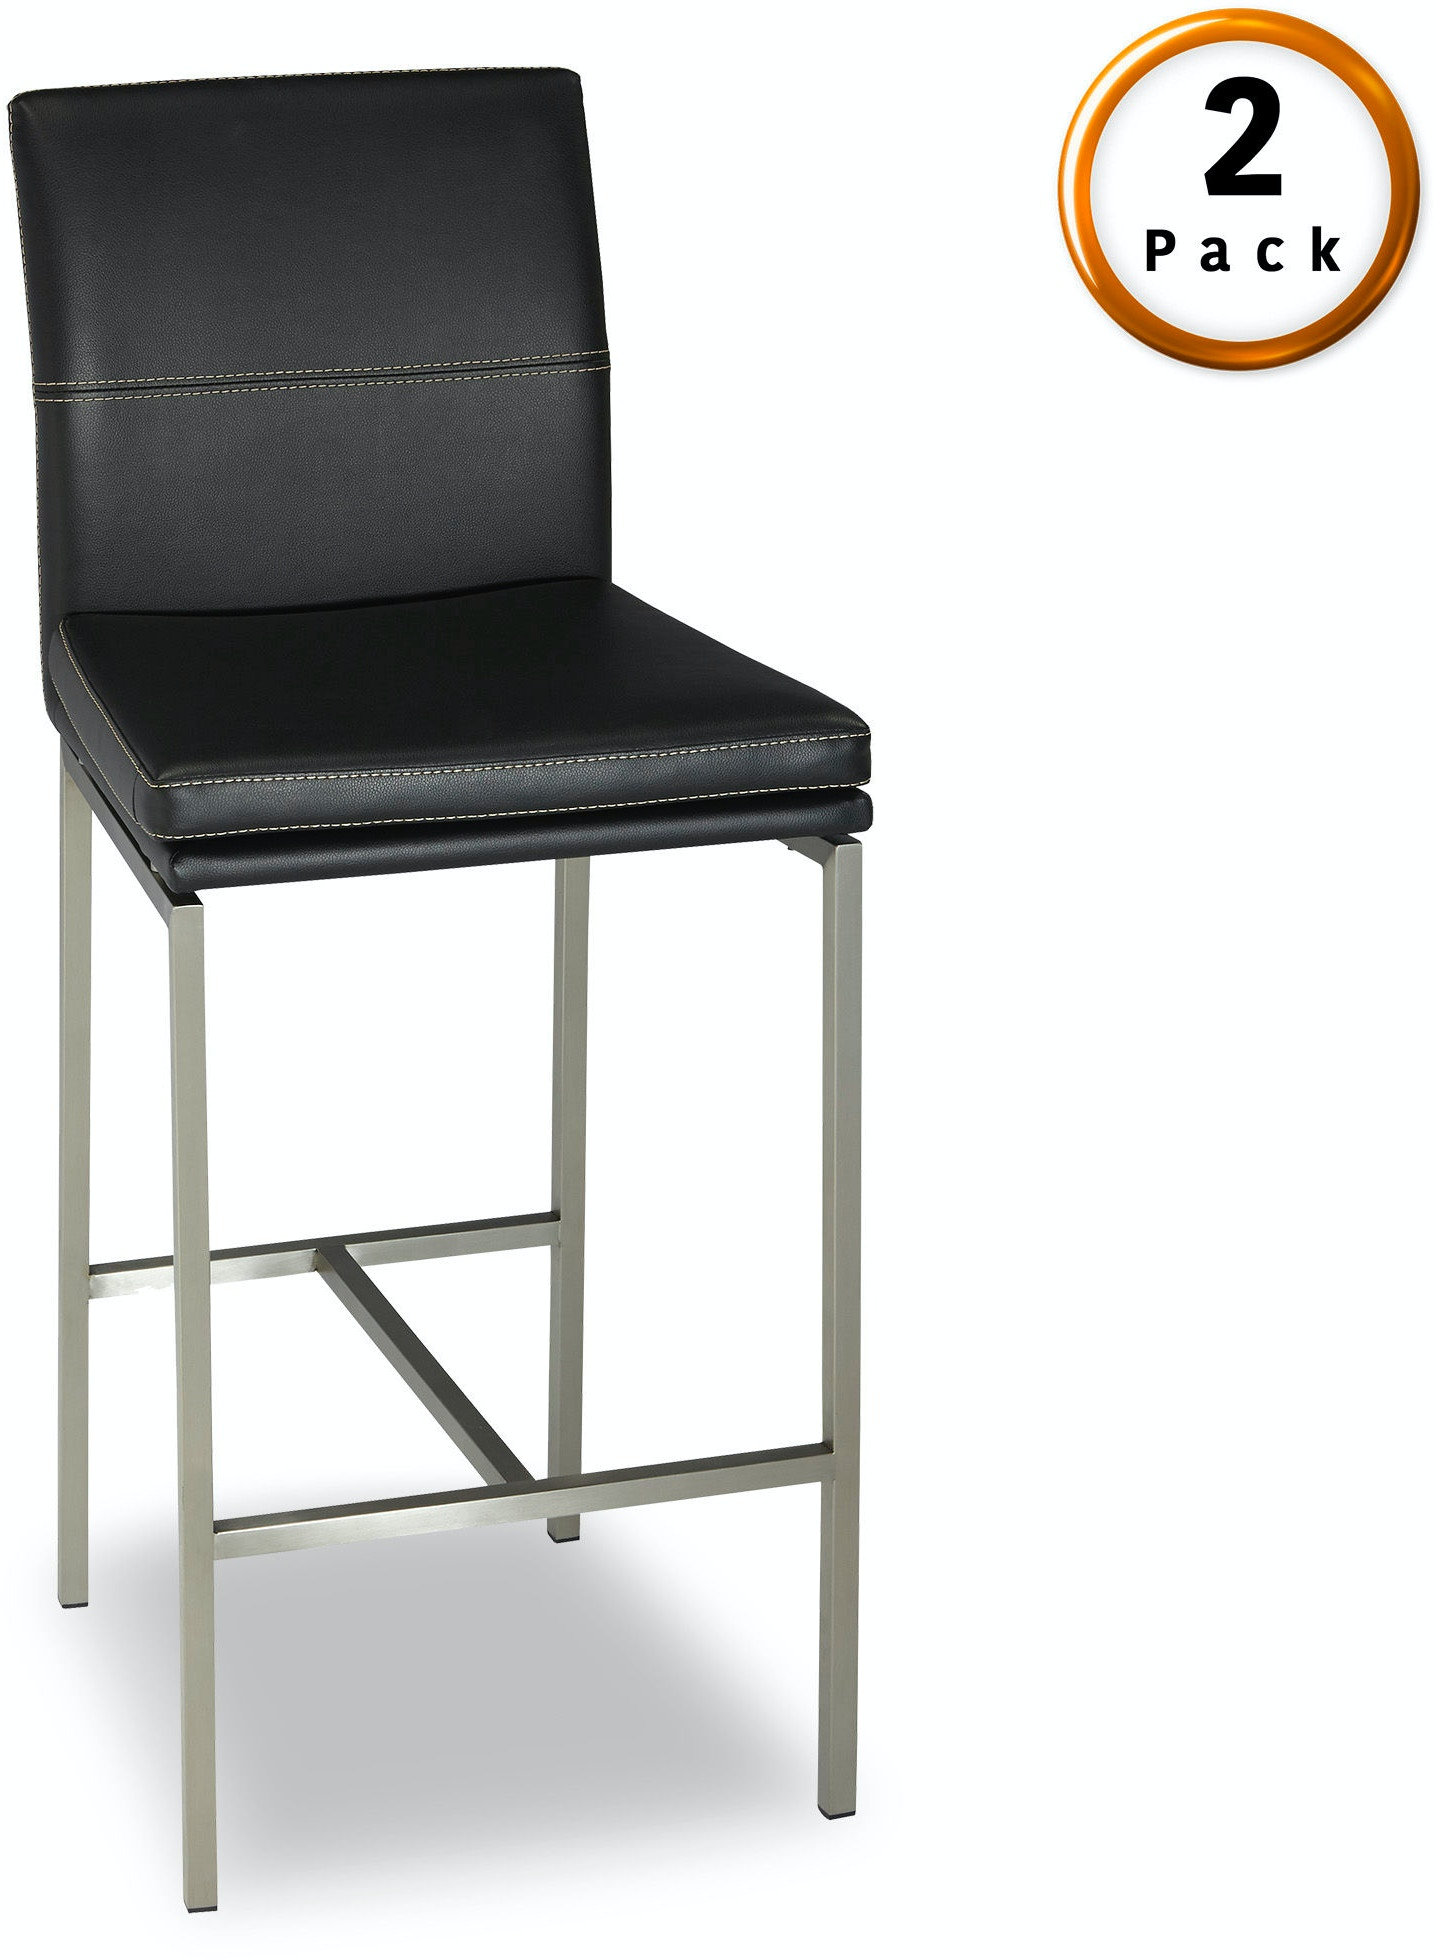 Fashion Bed Group Bar And Game Room Phoenix Bar Stool With Stainless